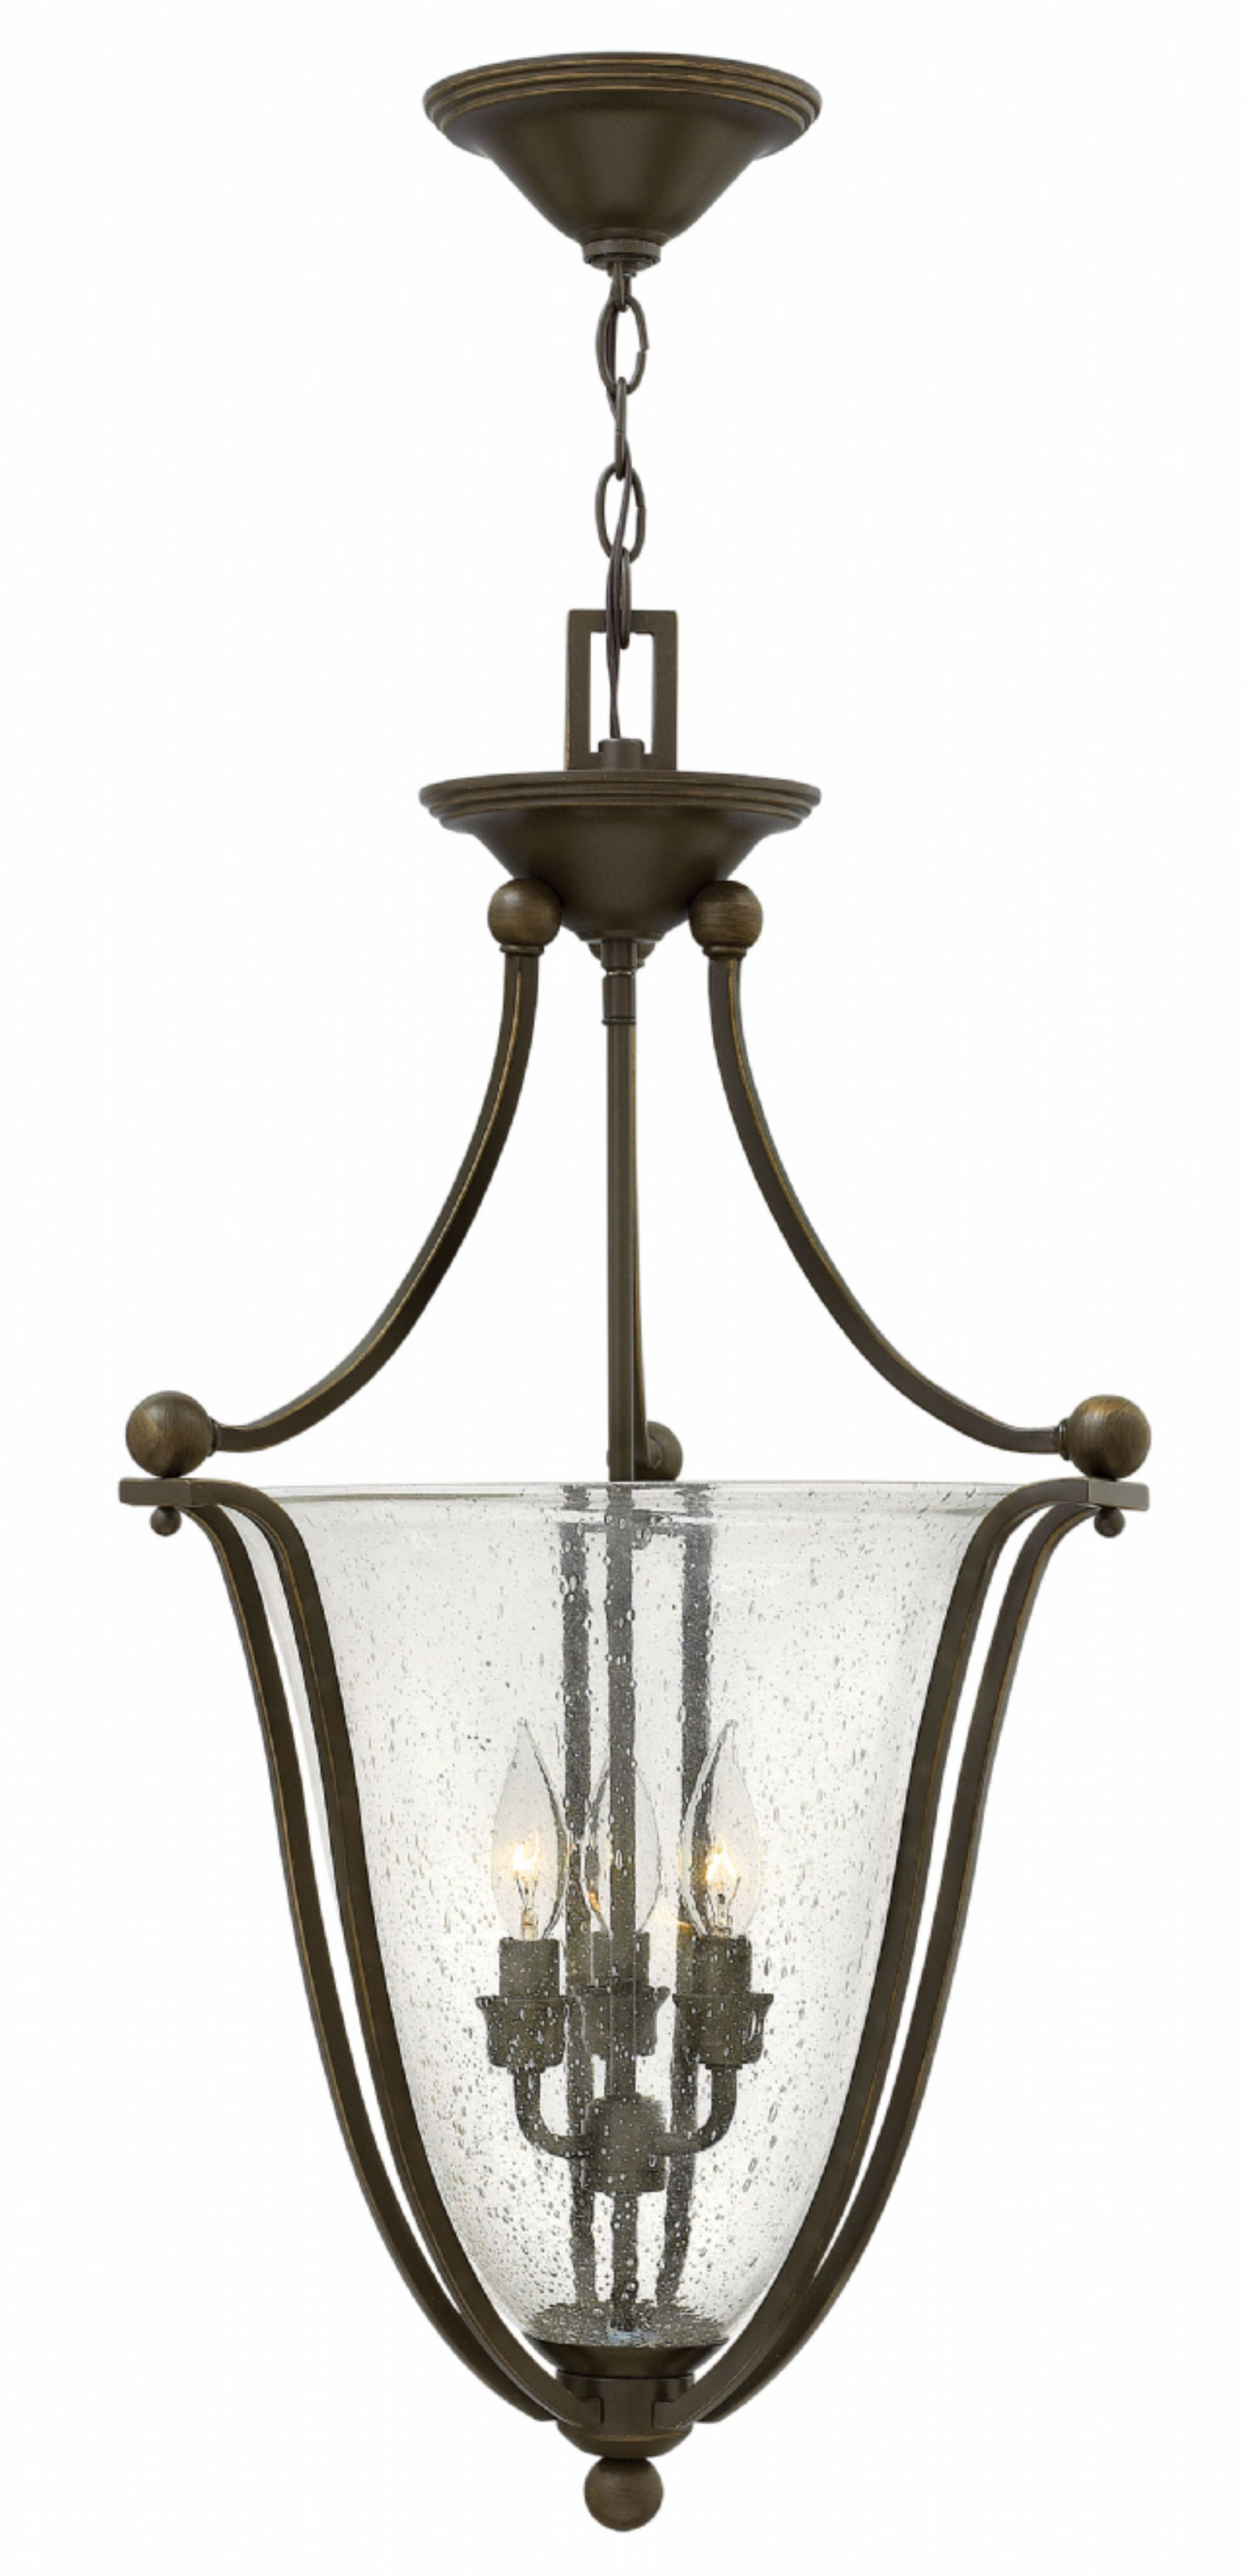 Hinkley Lighting 4663 3 Light Full Sized Foyer Pendant From The Bolla Collection Olde Bronze Clear Indoor Pendants